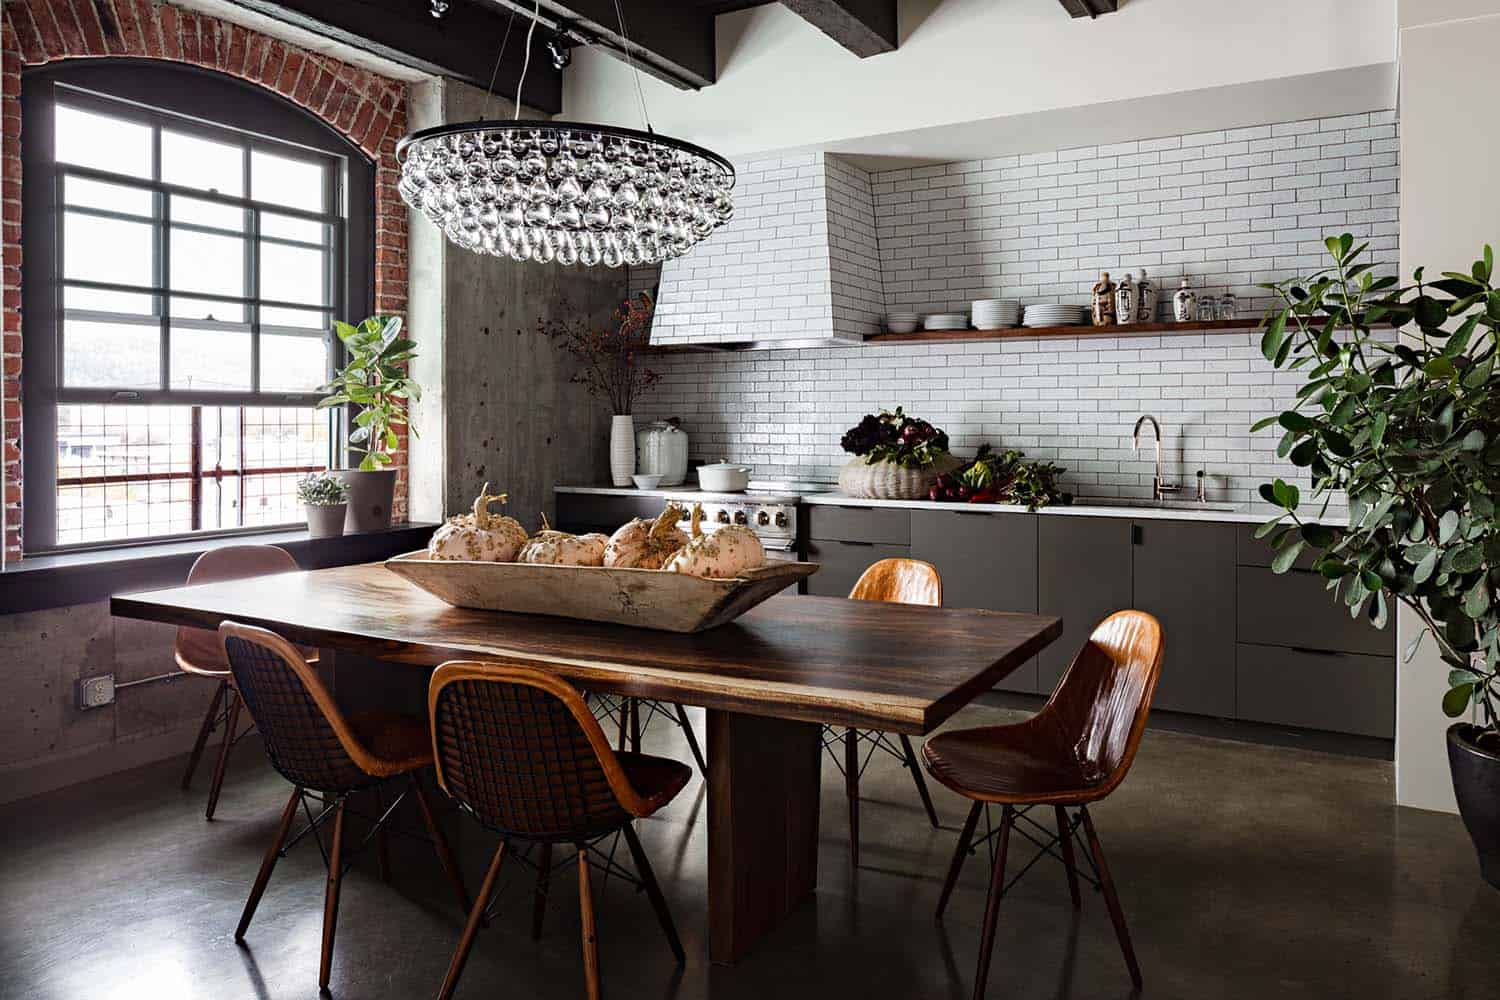 Fascinating Industrial Style Loft Apartment Renovation In Portland